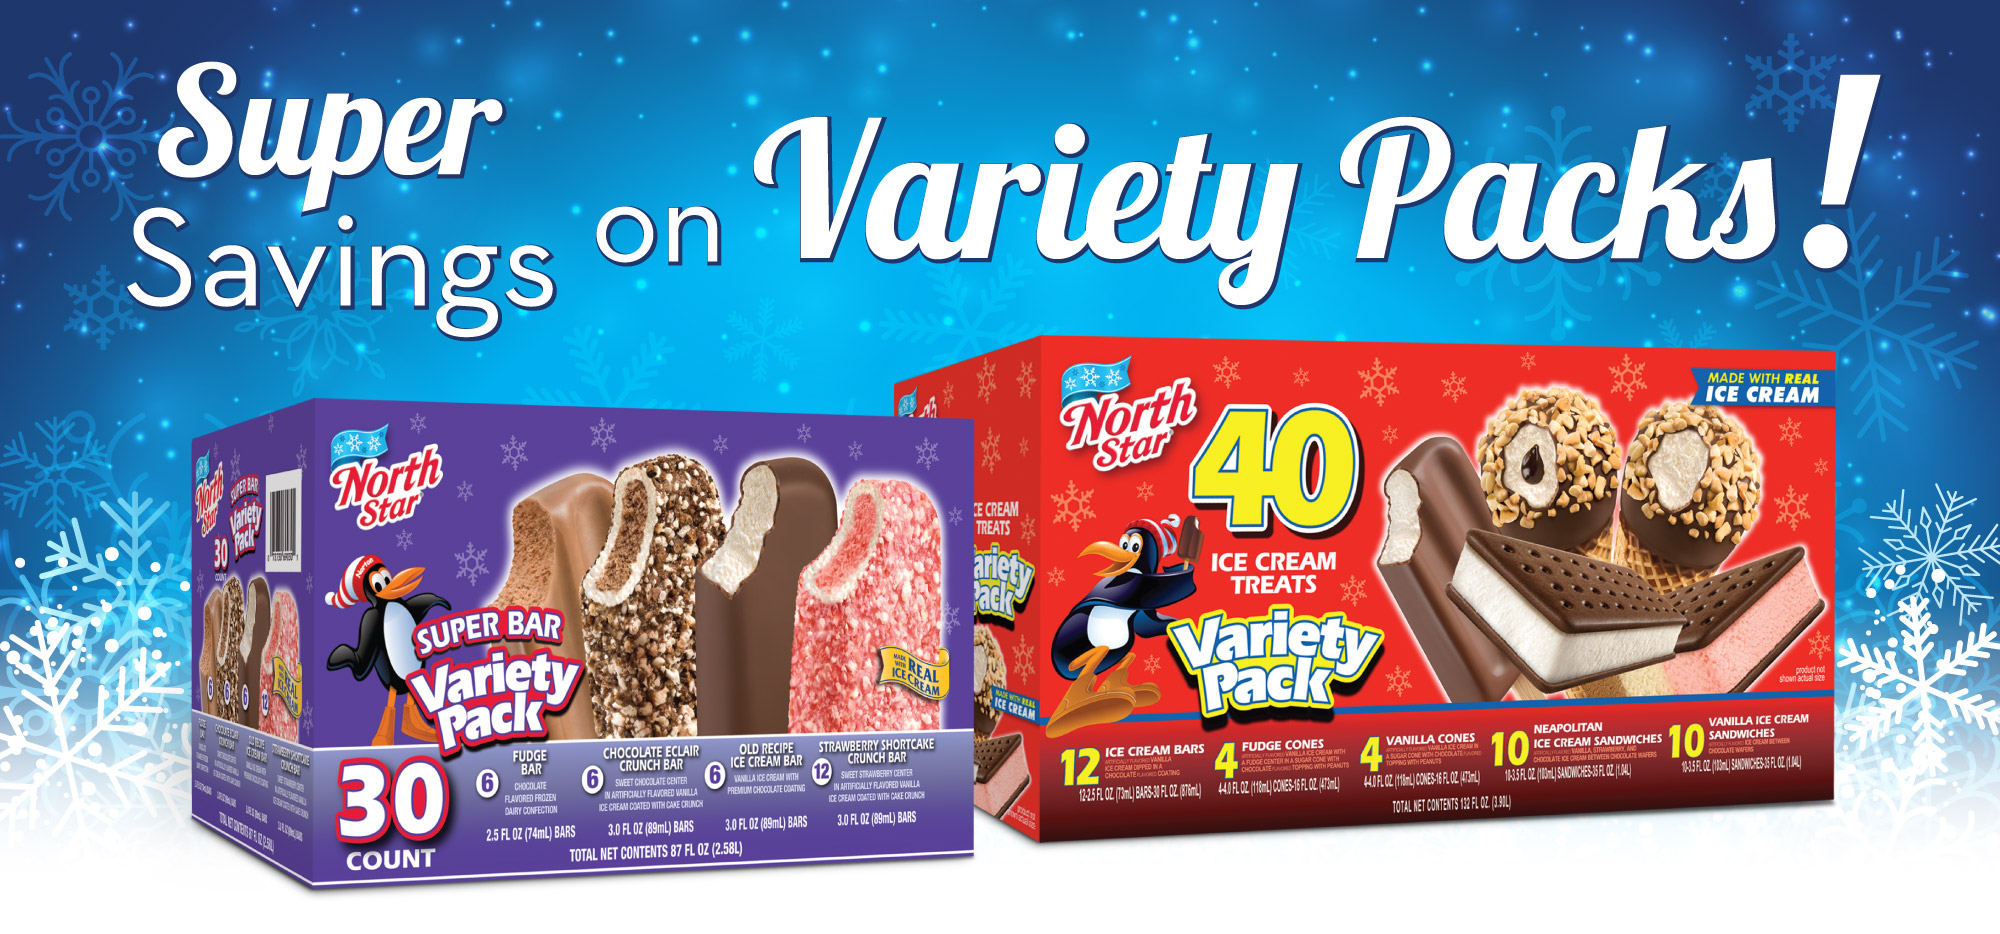 Super Savings on Variety Packs